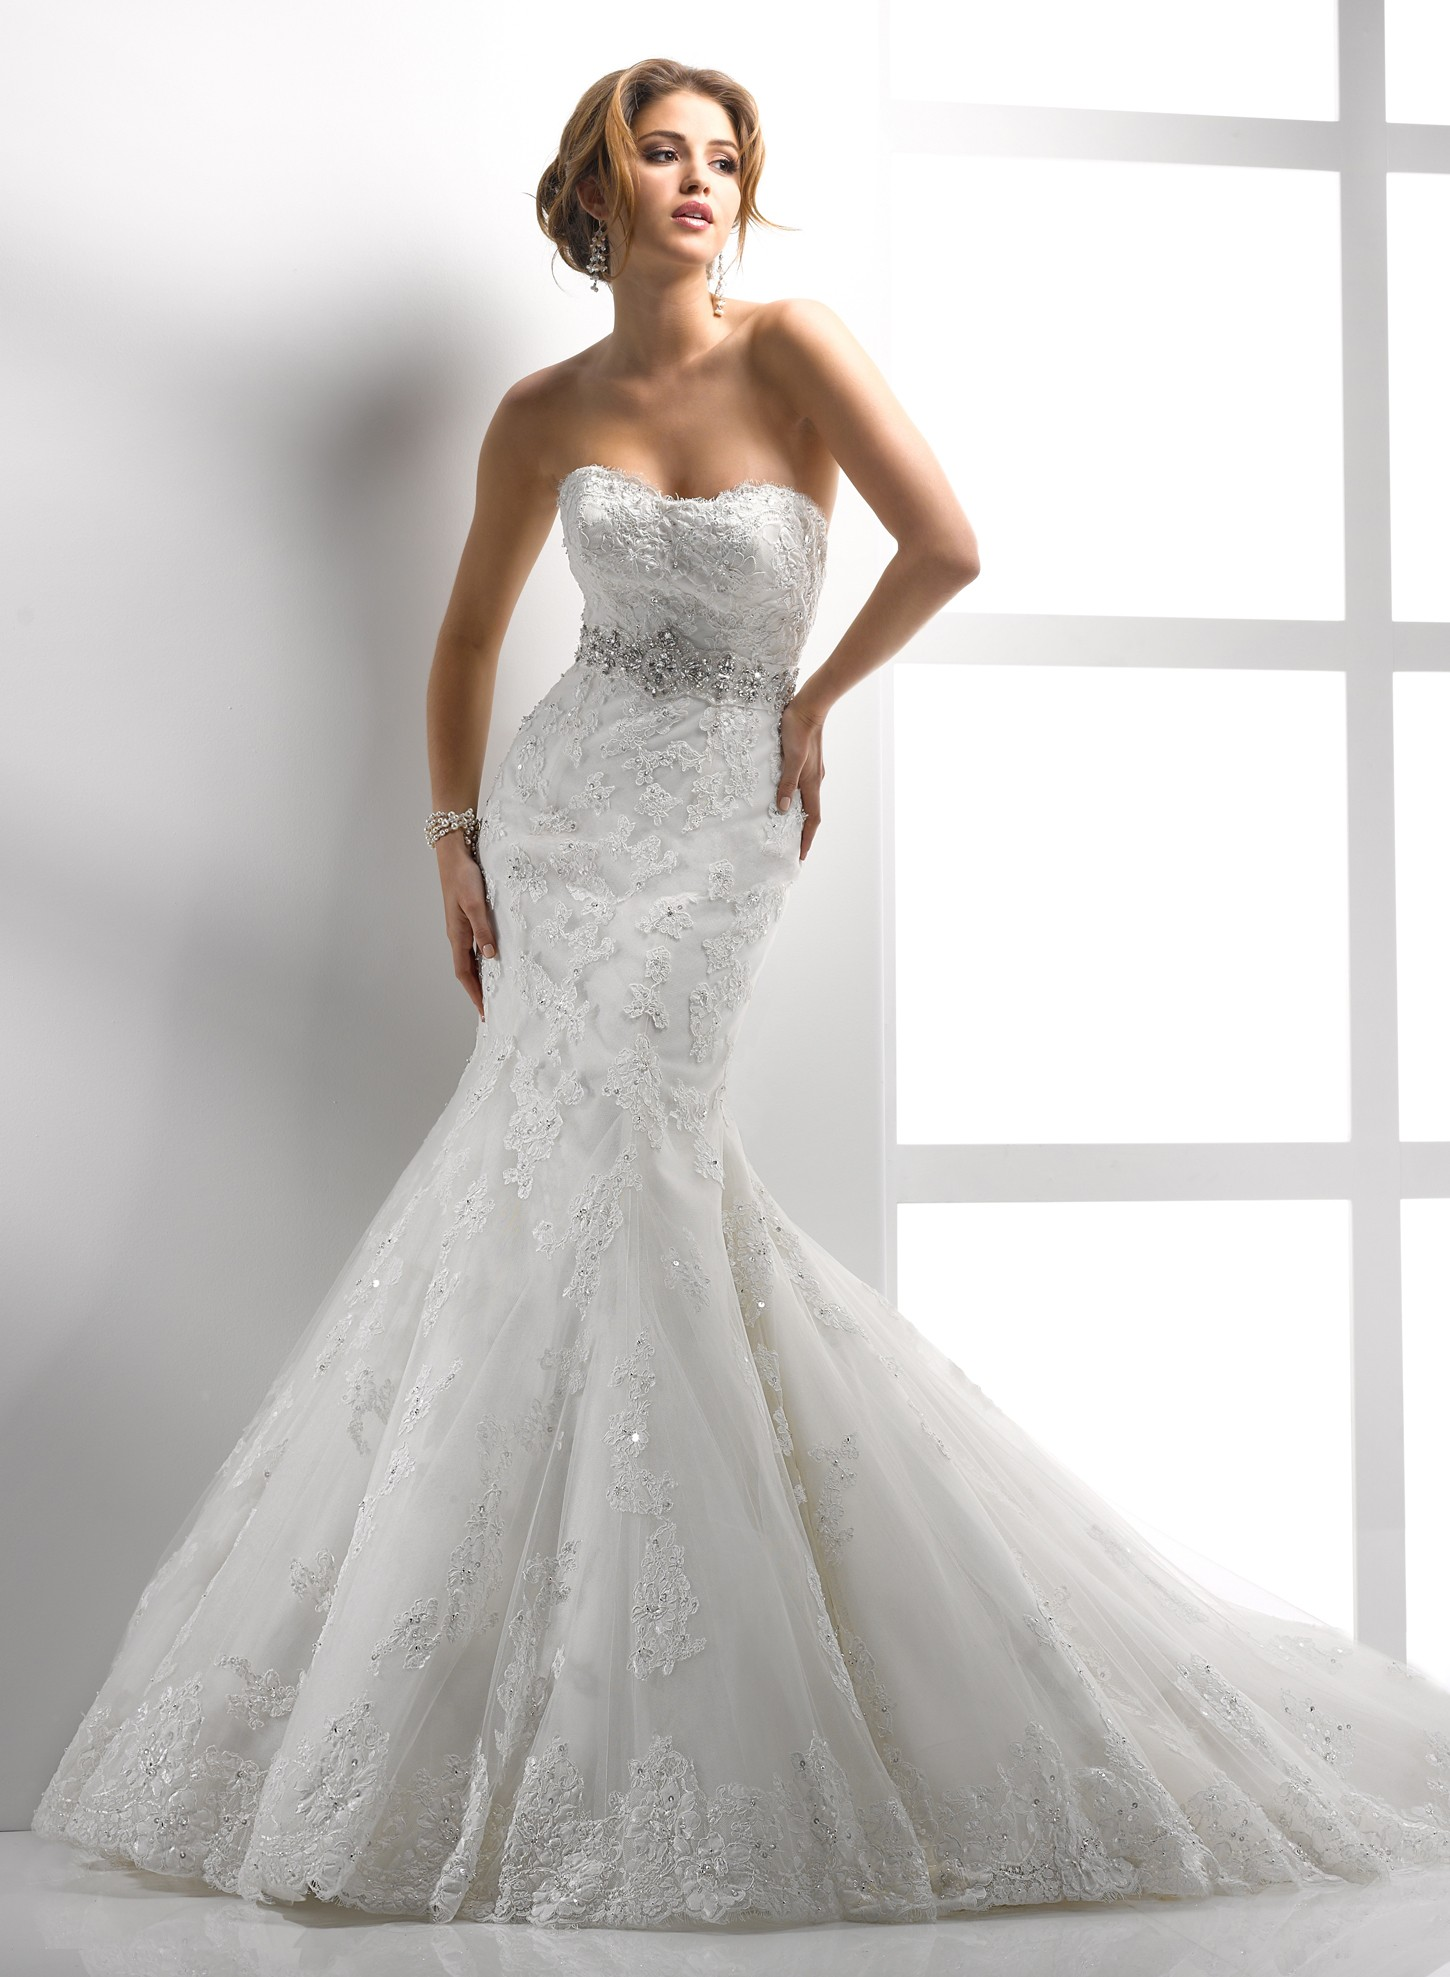 Mermaid Dresses Wedding - Wedding Dresses In Jax